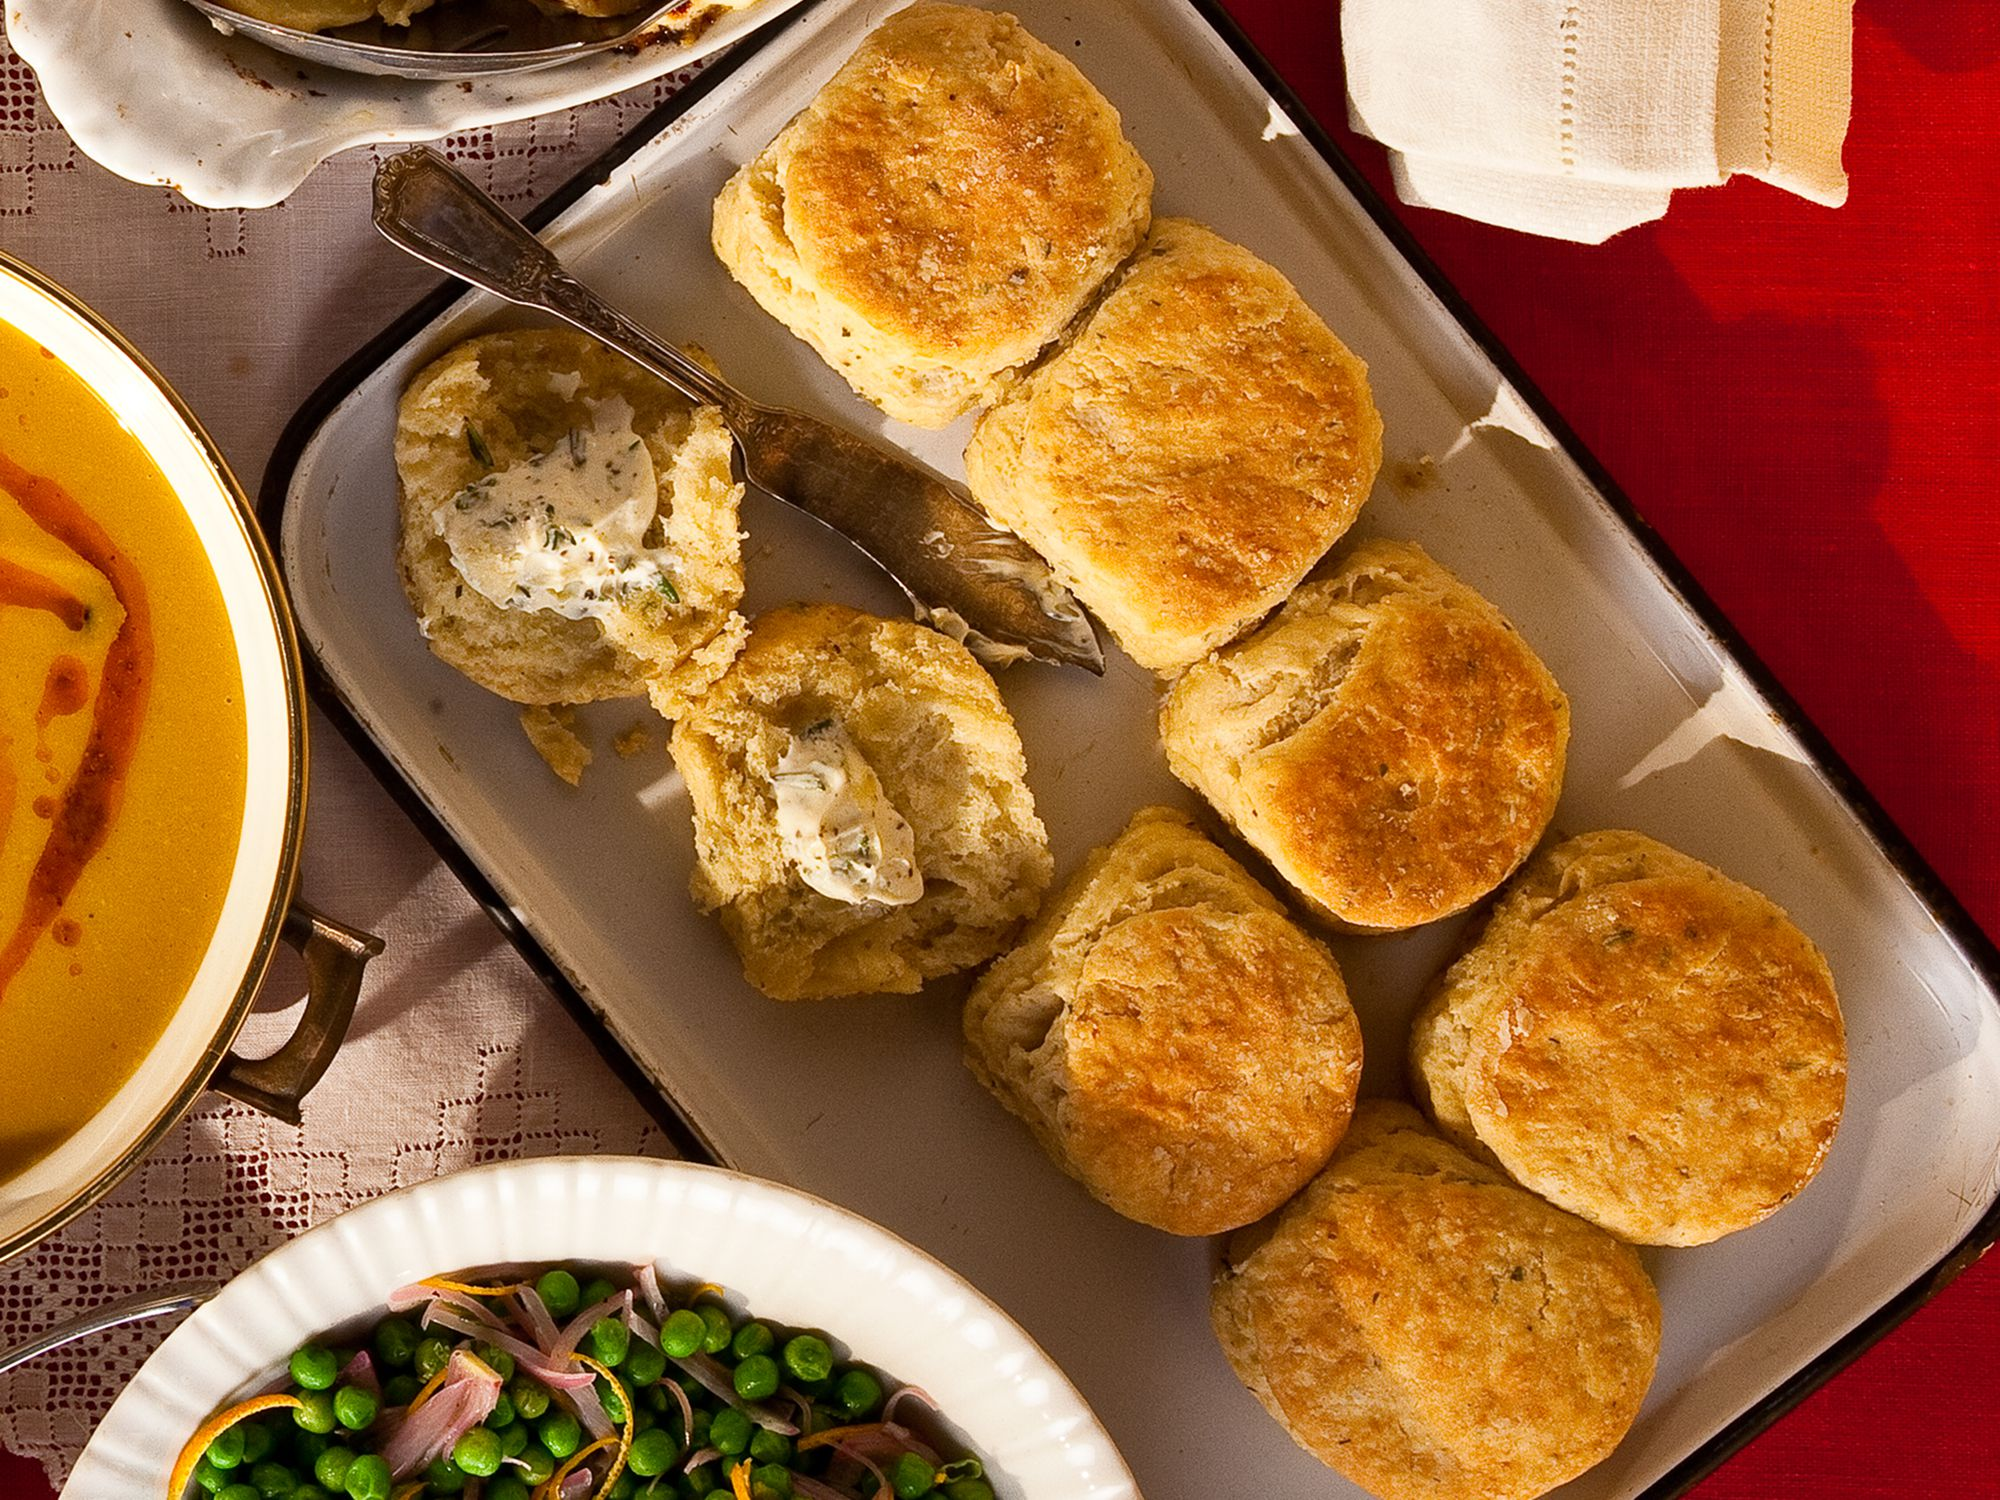 """Instead of plain dinner rolls, we like to serve these fluffy biscuits, fragrant with rosemary and thyme. Get the recipe for <a href=""""https://www.saveur.com/article/Recipes/Honey-and-Herb-Biscuits/"""">Honey and Herb Biscuits</a>"""